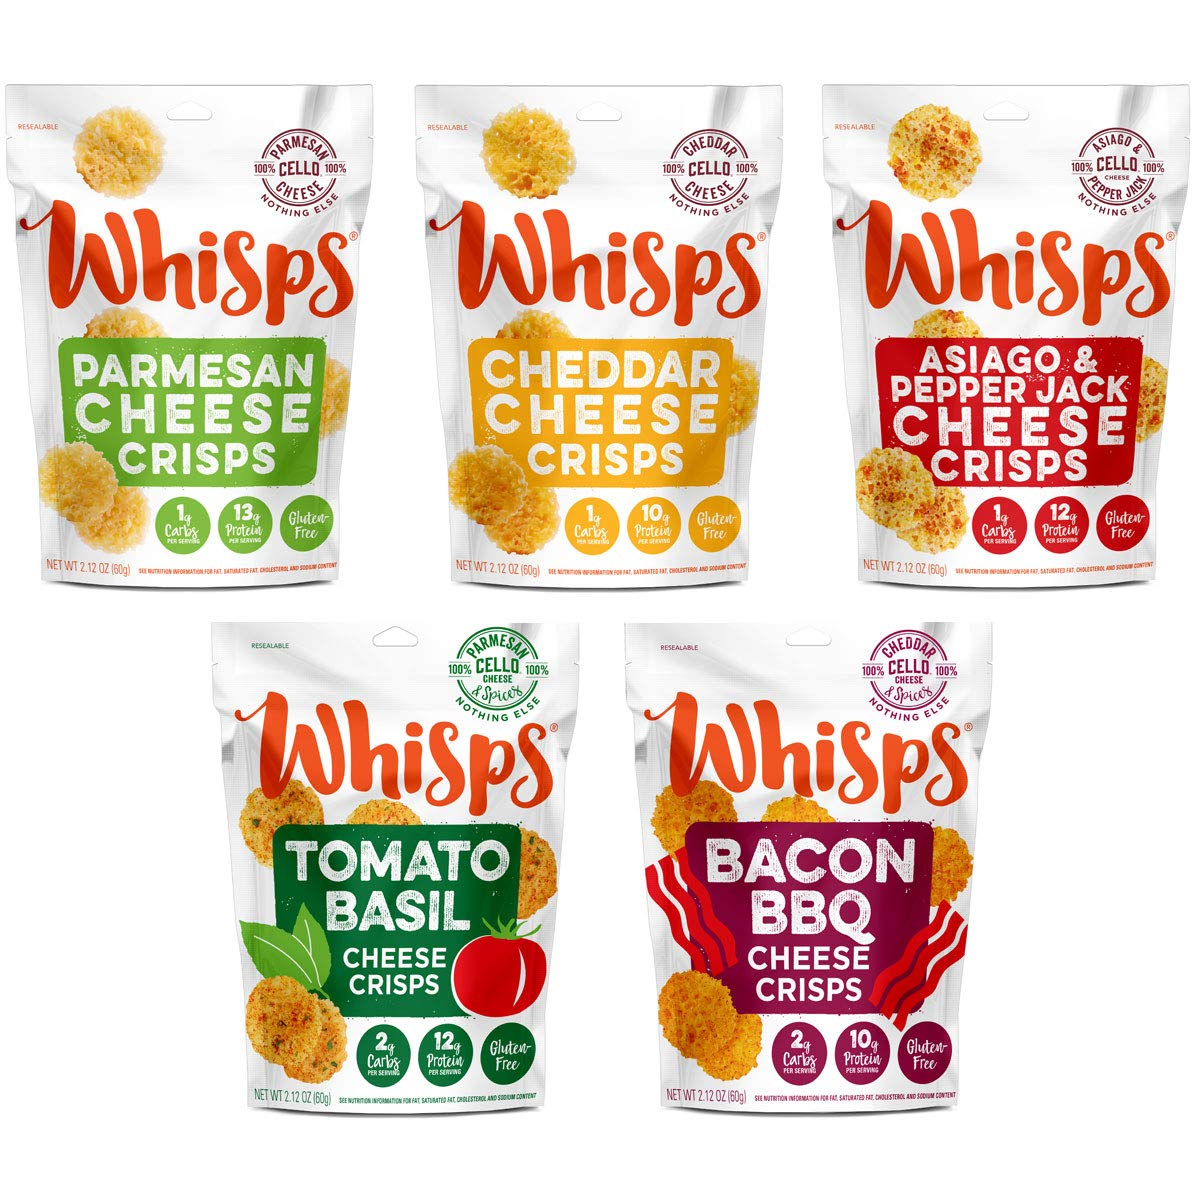 Whisps Cheese Crisps 100 Cheese Crunchy Assortment Keto Snack No Gluten No Sugar Low Carb High Protein 2 12 Ounce 5 Pack